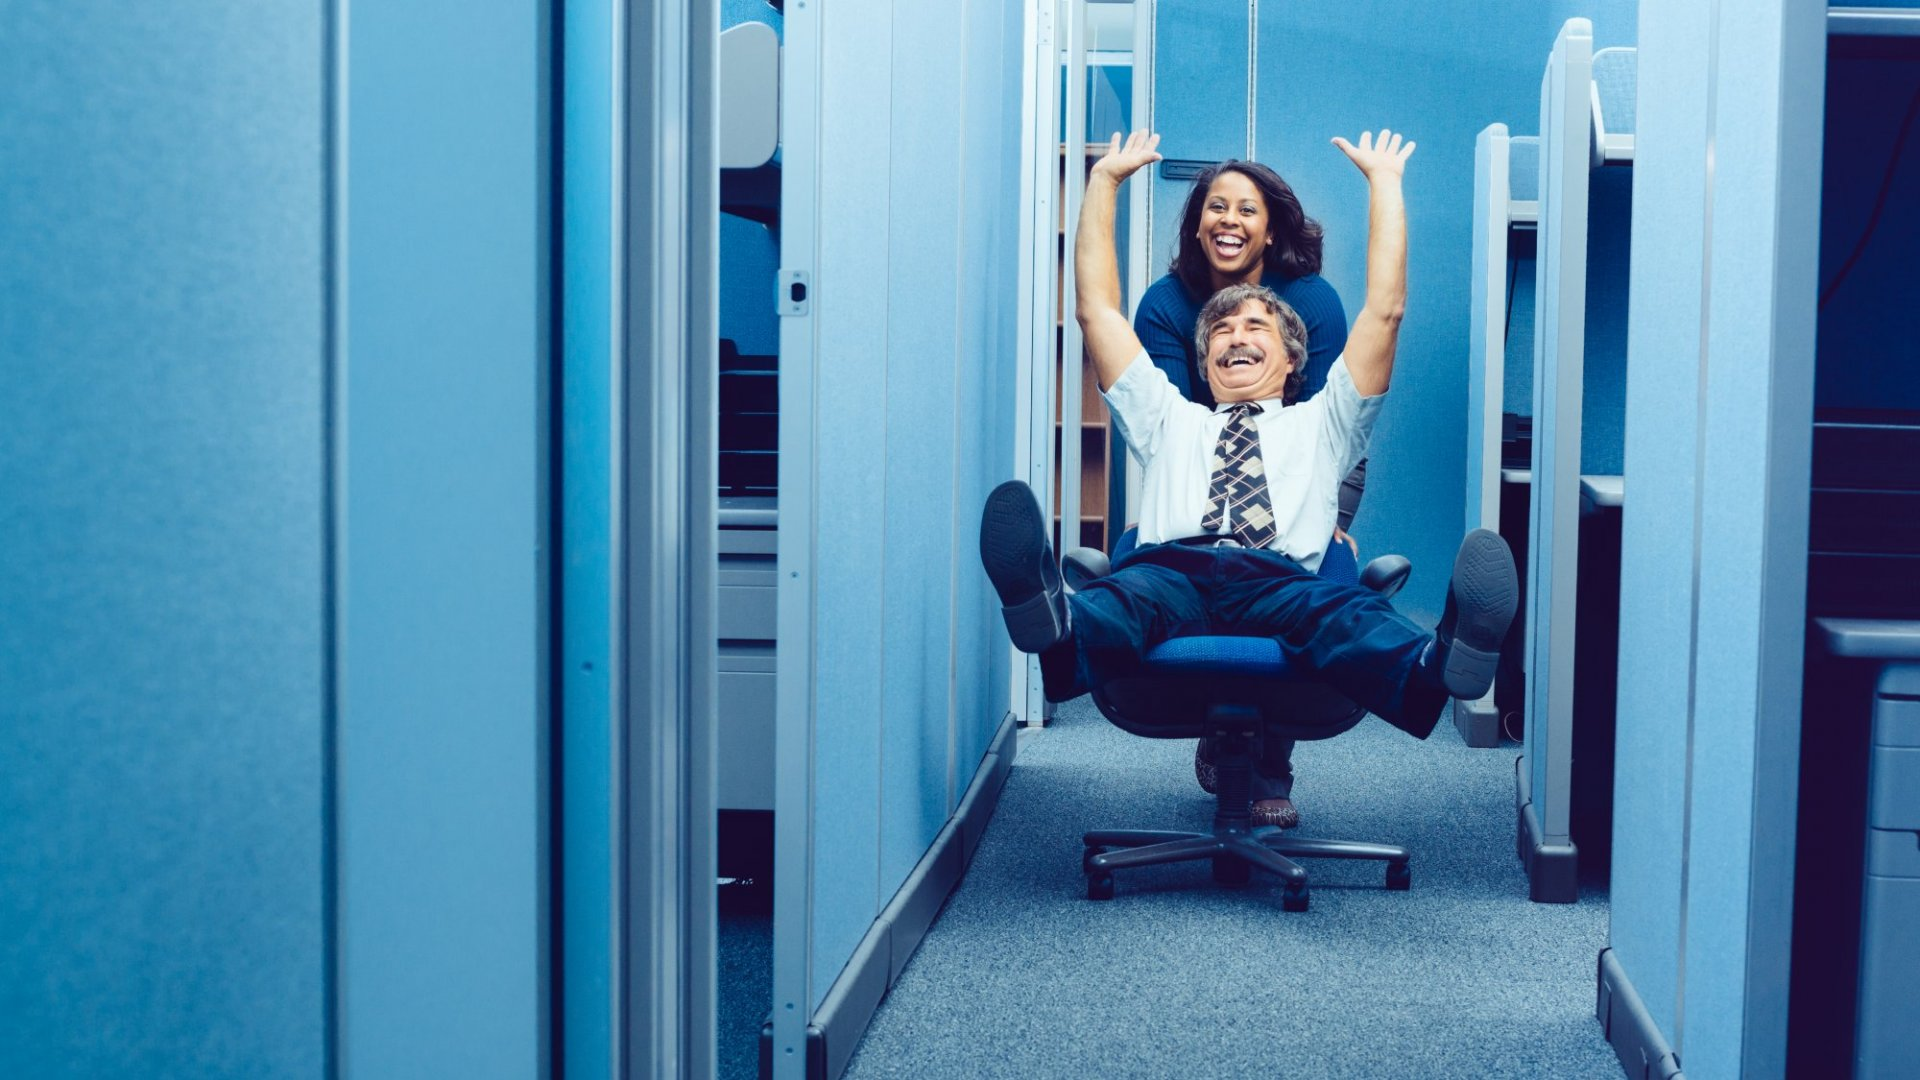 How Managers Can Avoid Getting Too Close to Their Employees